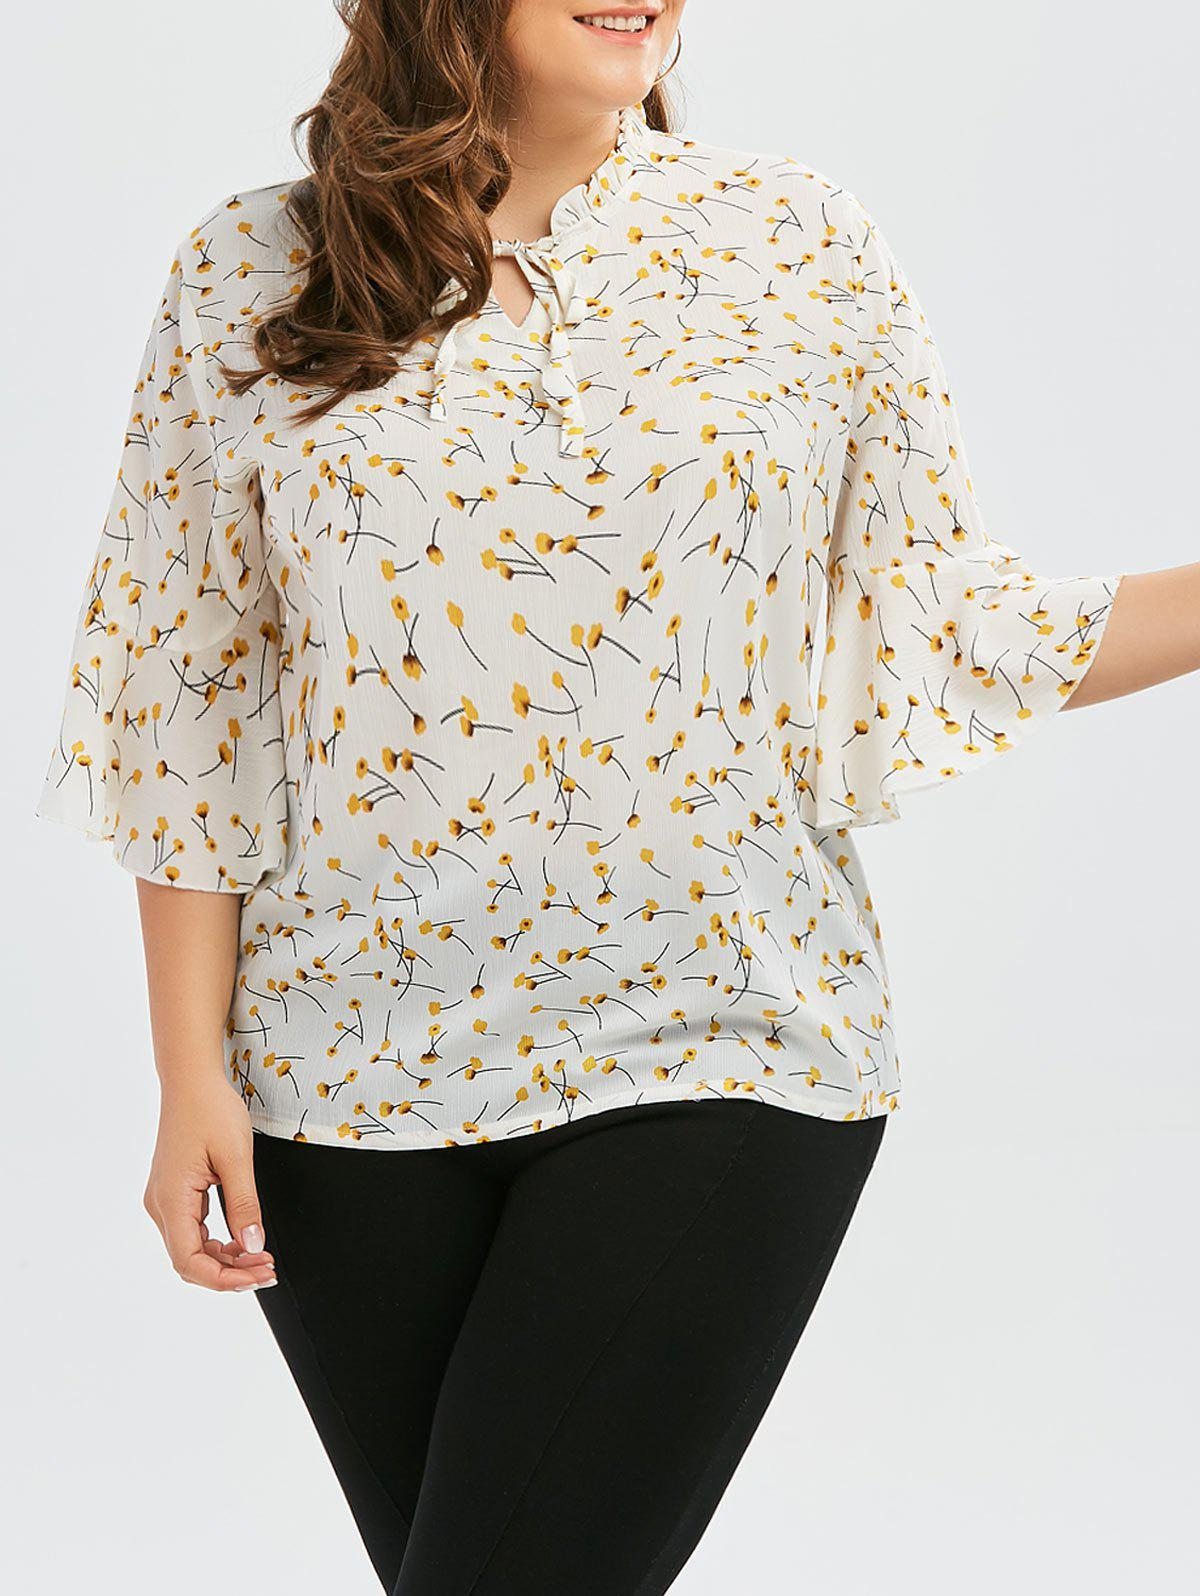 Plus Size Ruffle Neck Floral Blouse with Bell Sleeve 1 8 3 17mm 2mm 400m pu transparent tube pu clear tube pneumatic hoses air hoses